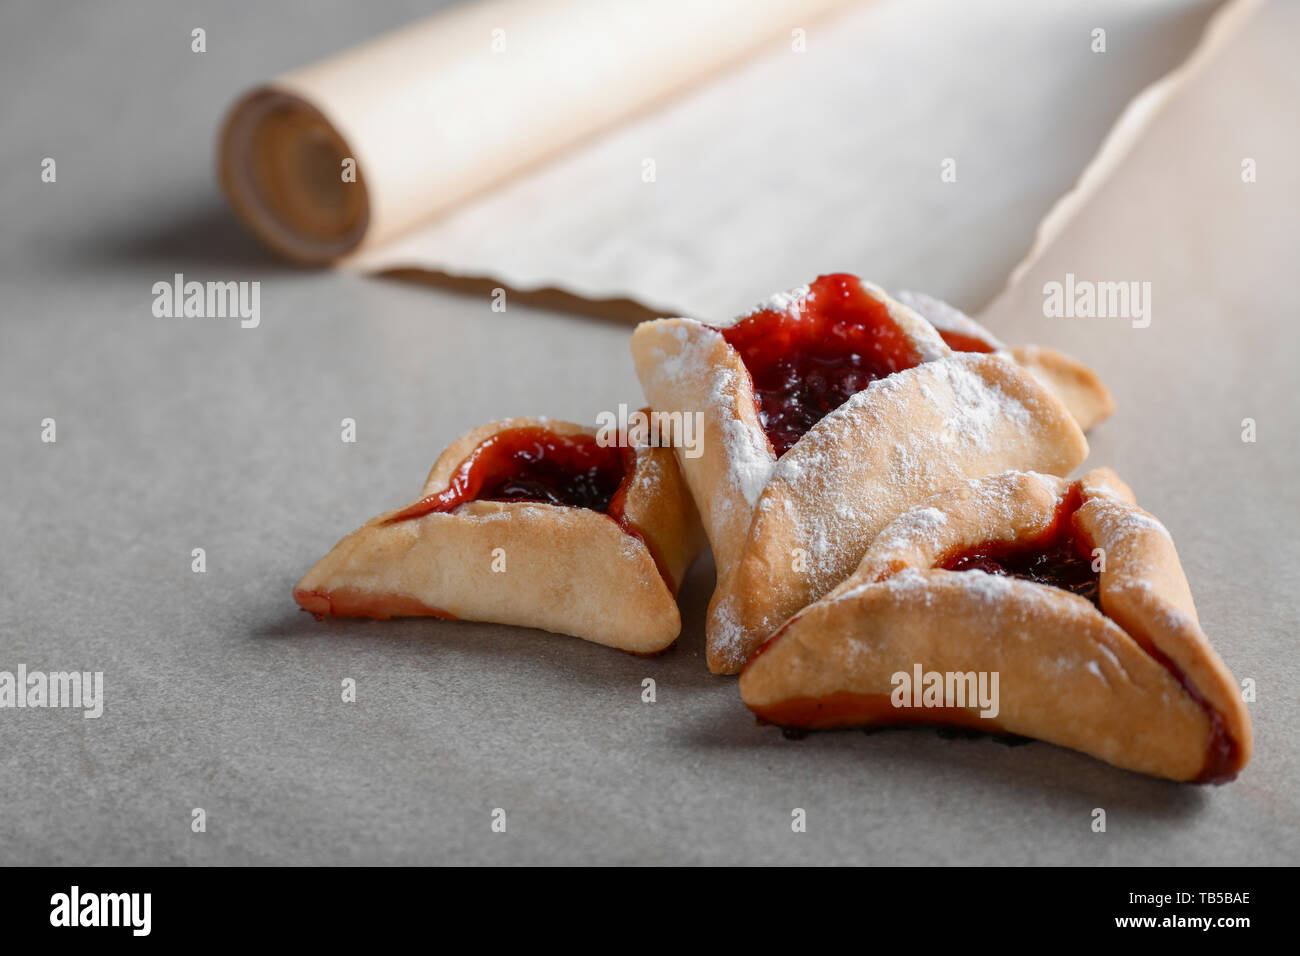 Hamantaschen for Purim holiday and the Scroll of Esther on table - Stock Image